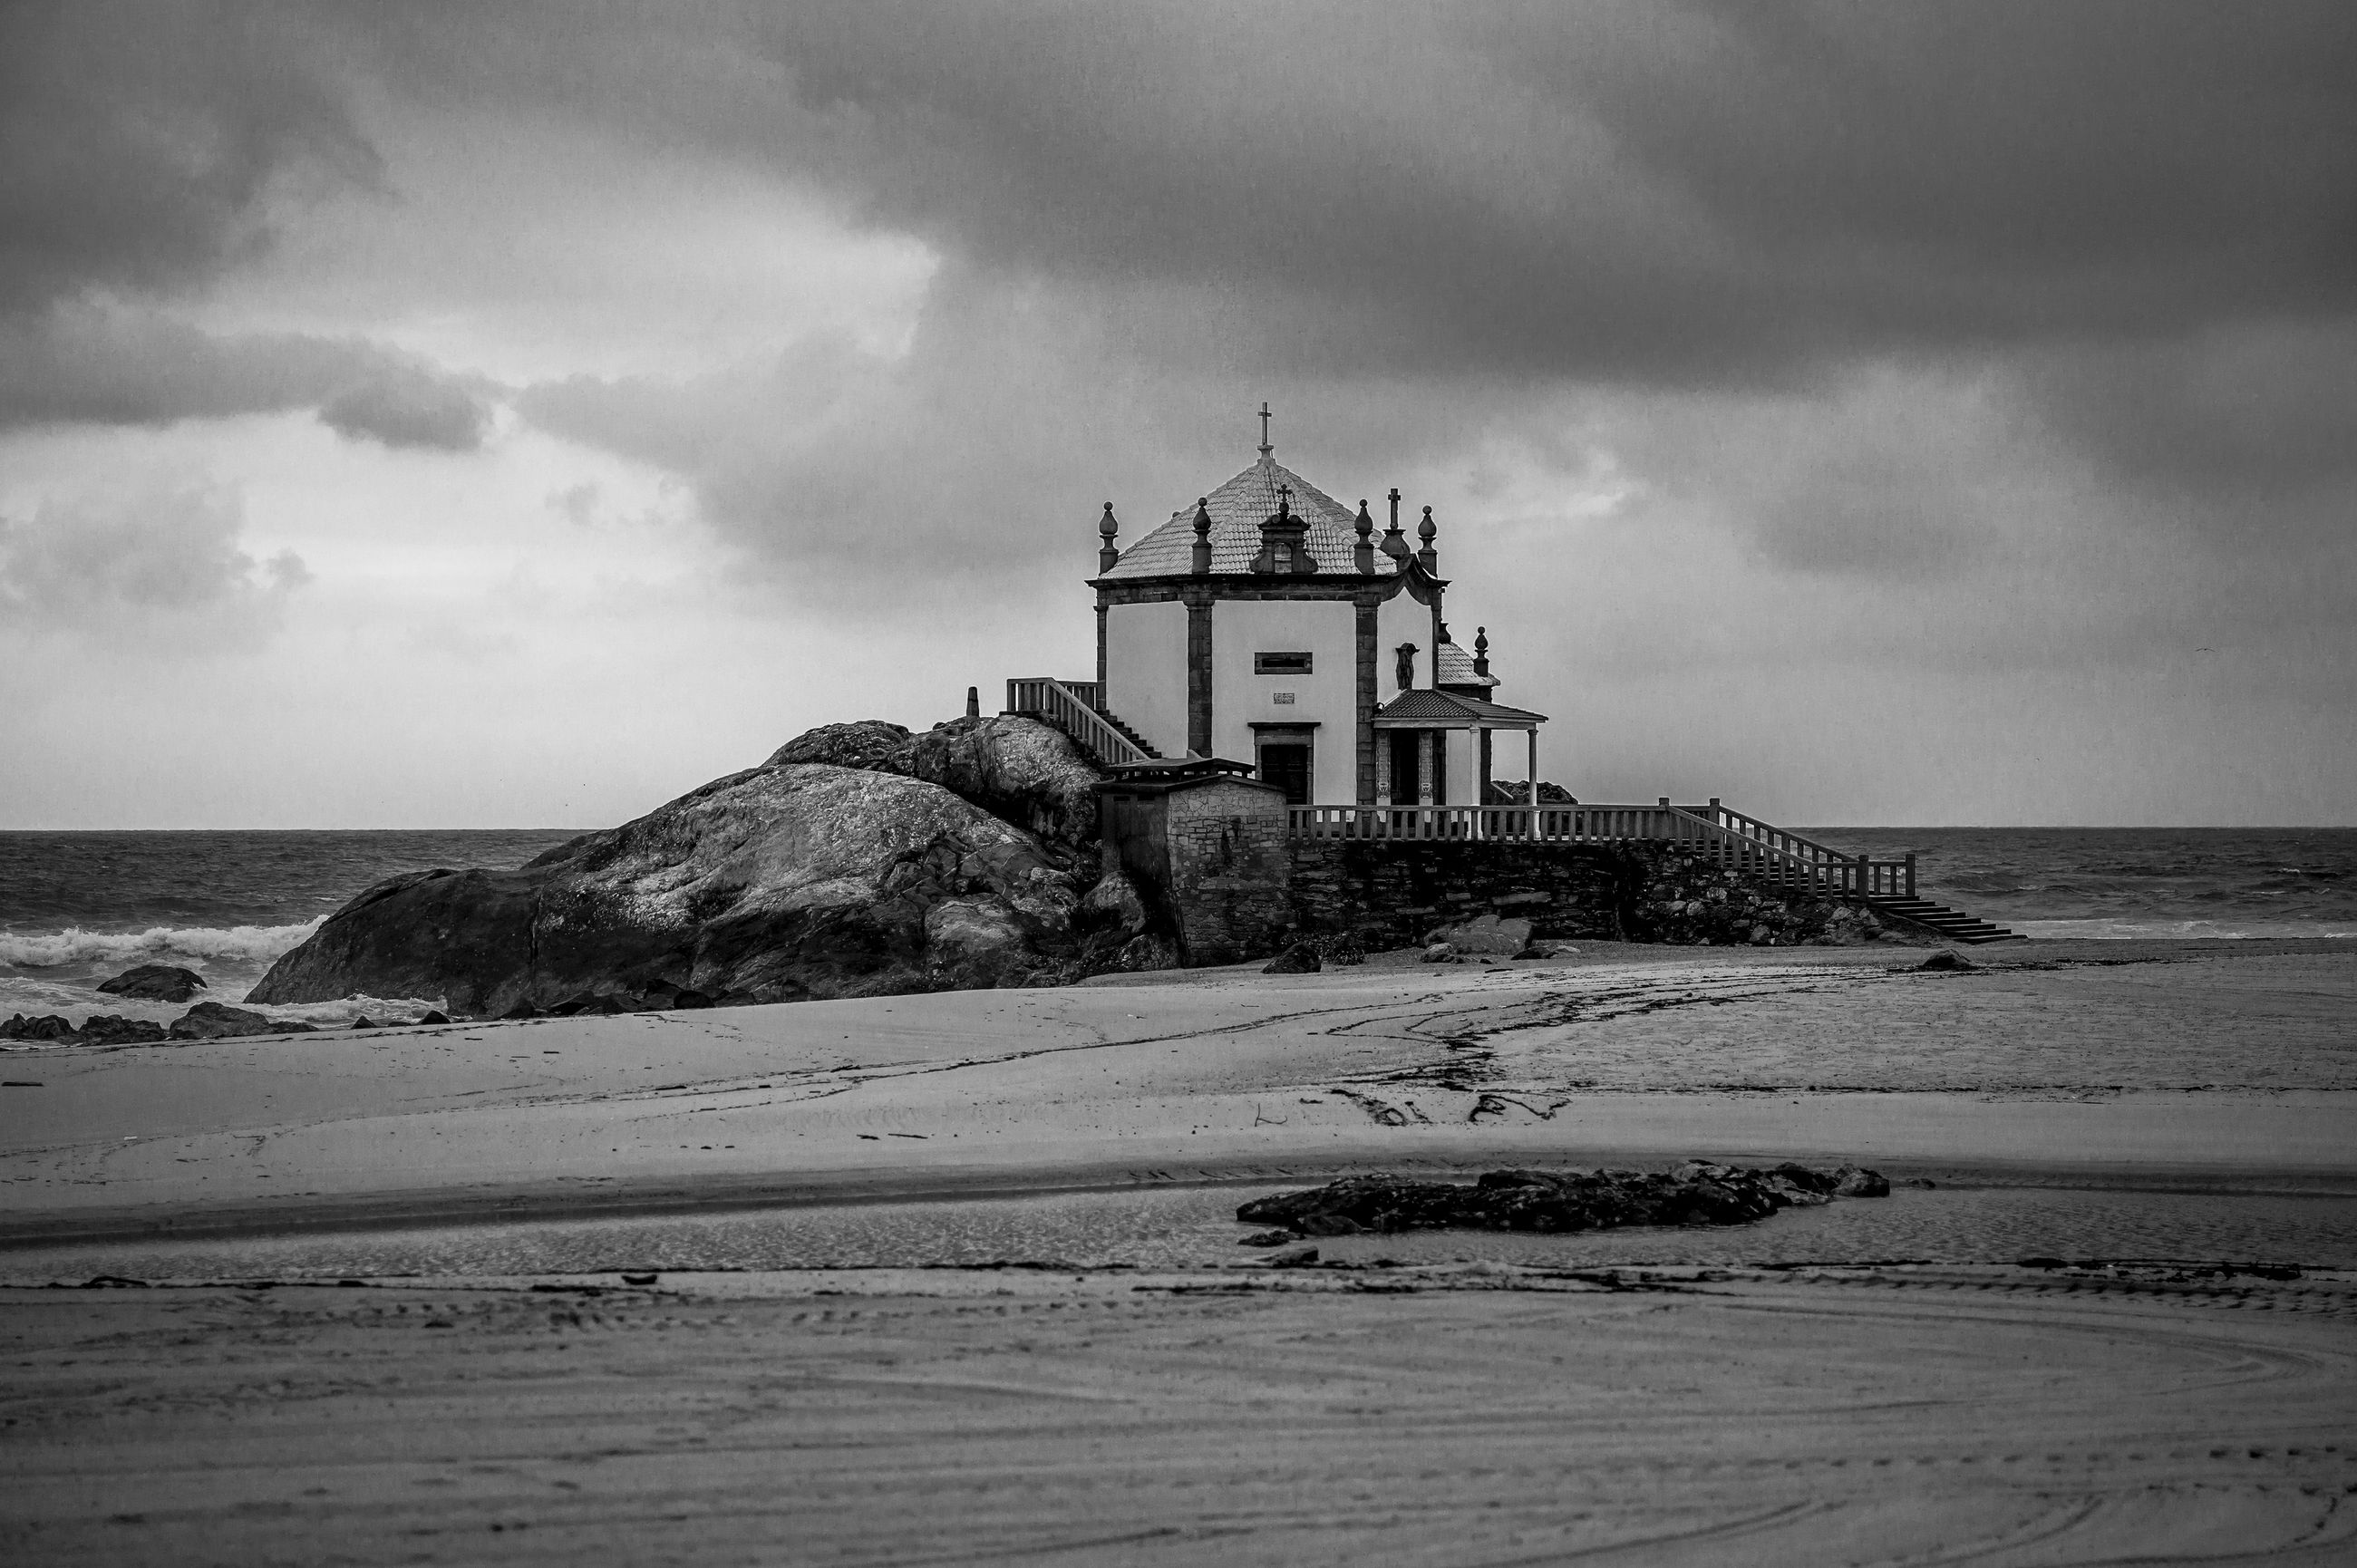 sea, sky, beach, horizon over water, lighthouse, water, built structure, architecture, shore, building exterior, guidance, sand, cloud - sky, tranquil scene, scenics, tranquility, nature, protection, beauty in nature, direction